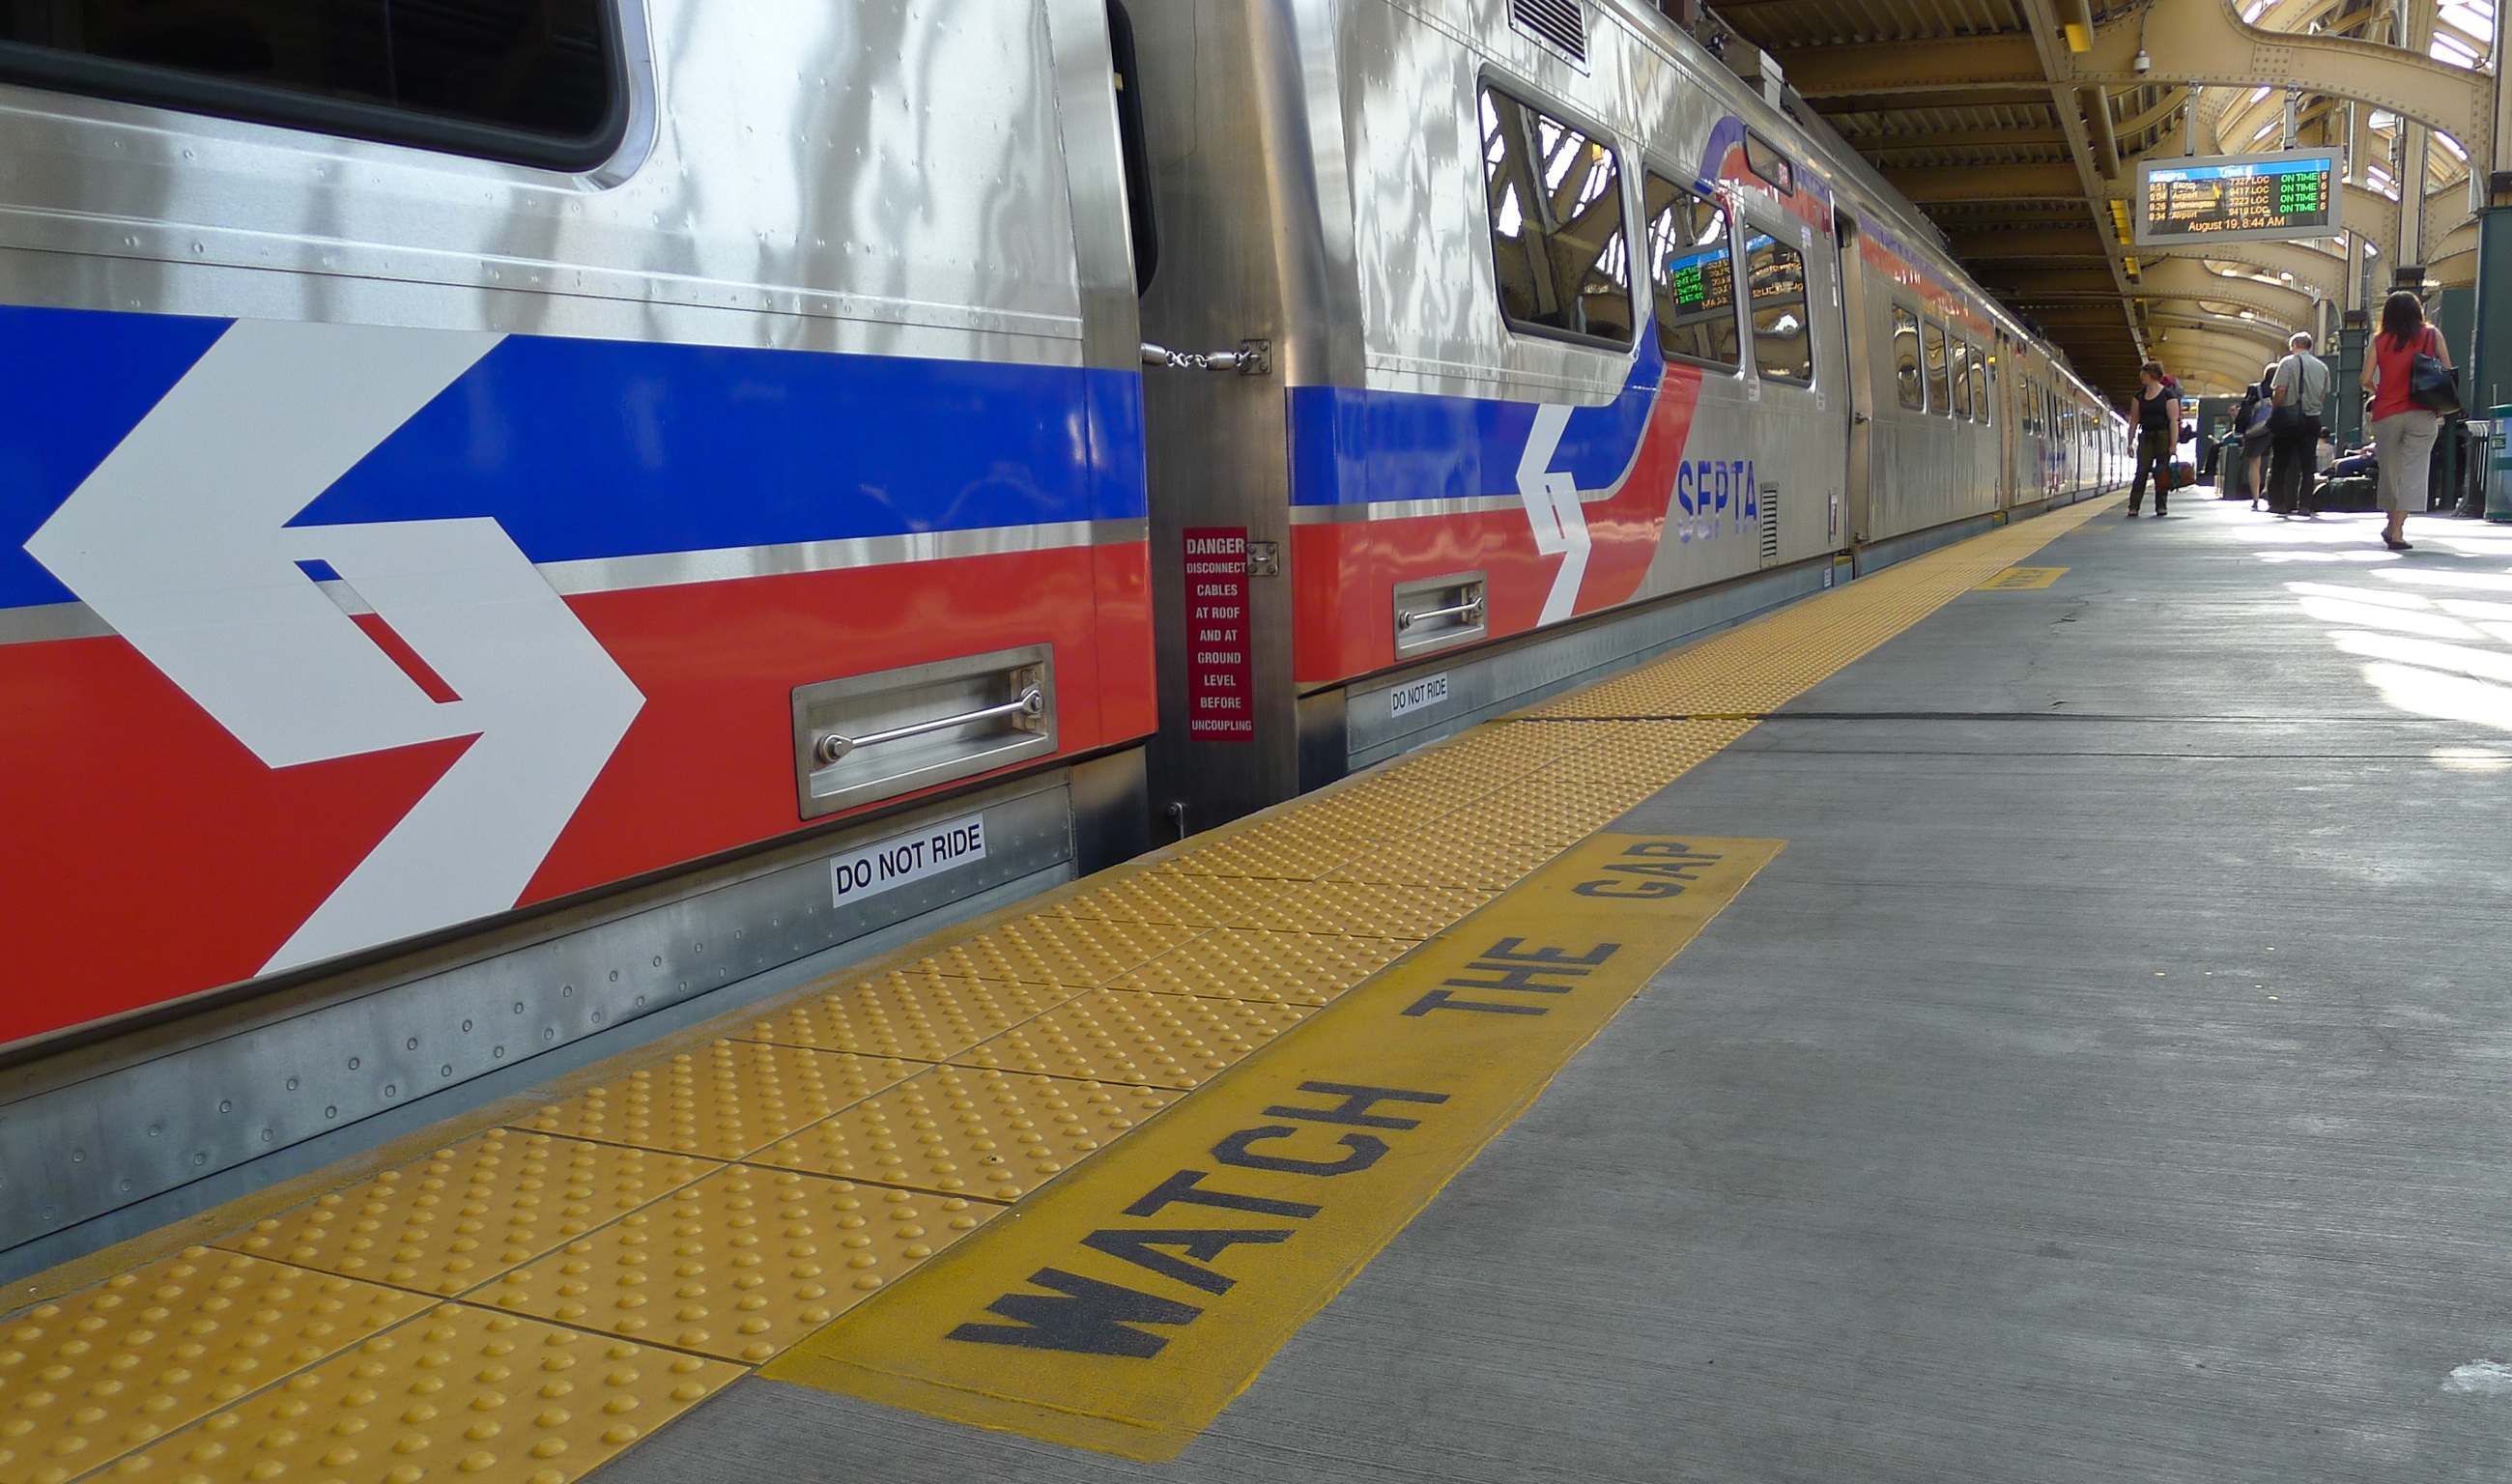 Bystanders Doing Nothing While Woman Raped on Train 'Speaks to Where We Are in Society': Police